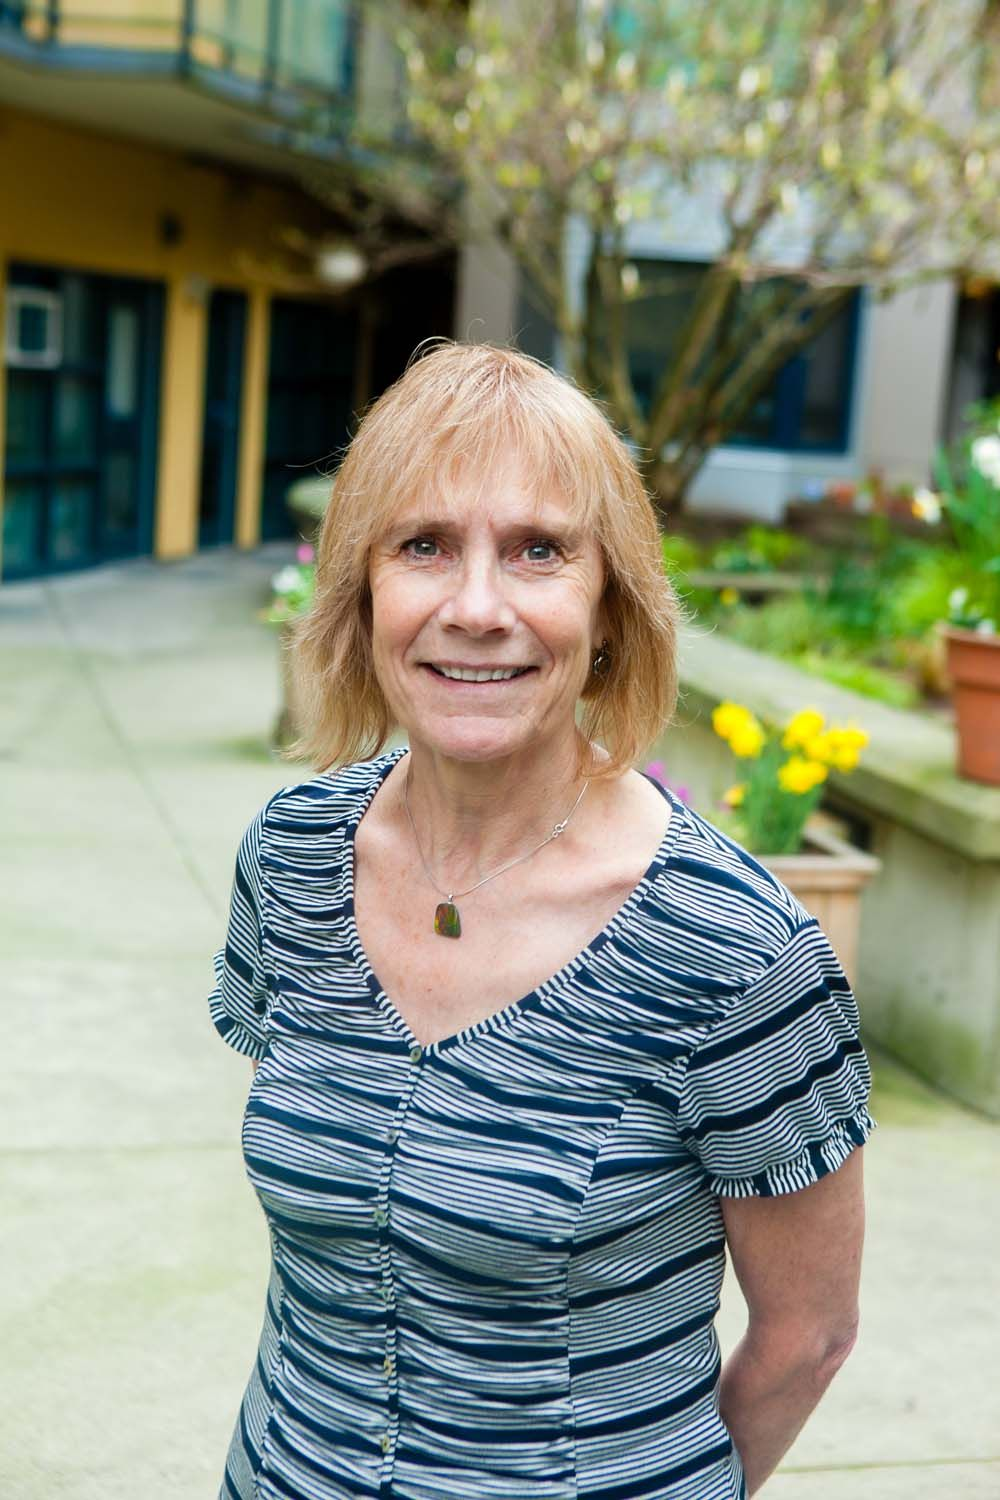 Our executive director Karen O'Shannacery (With images